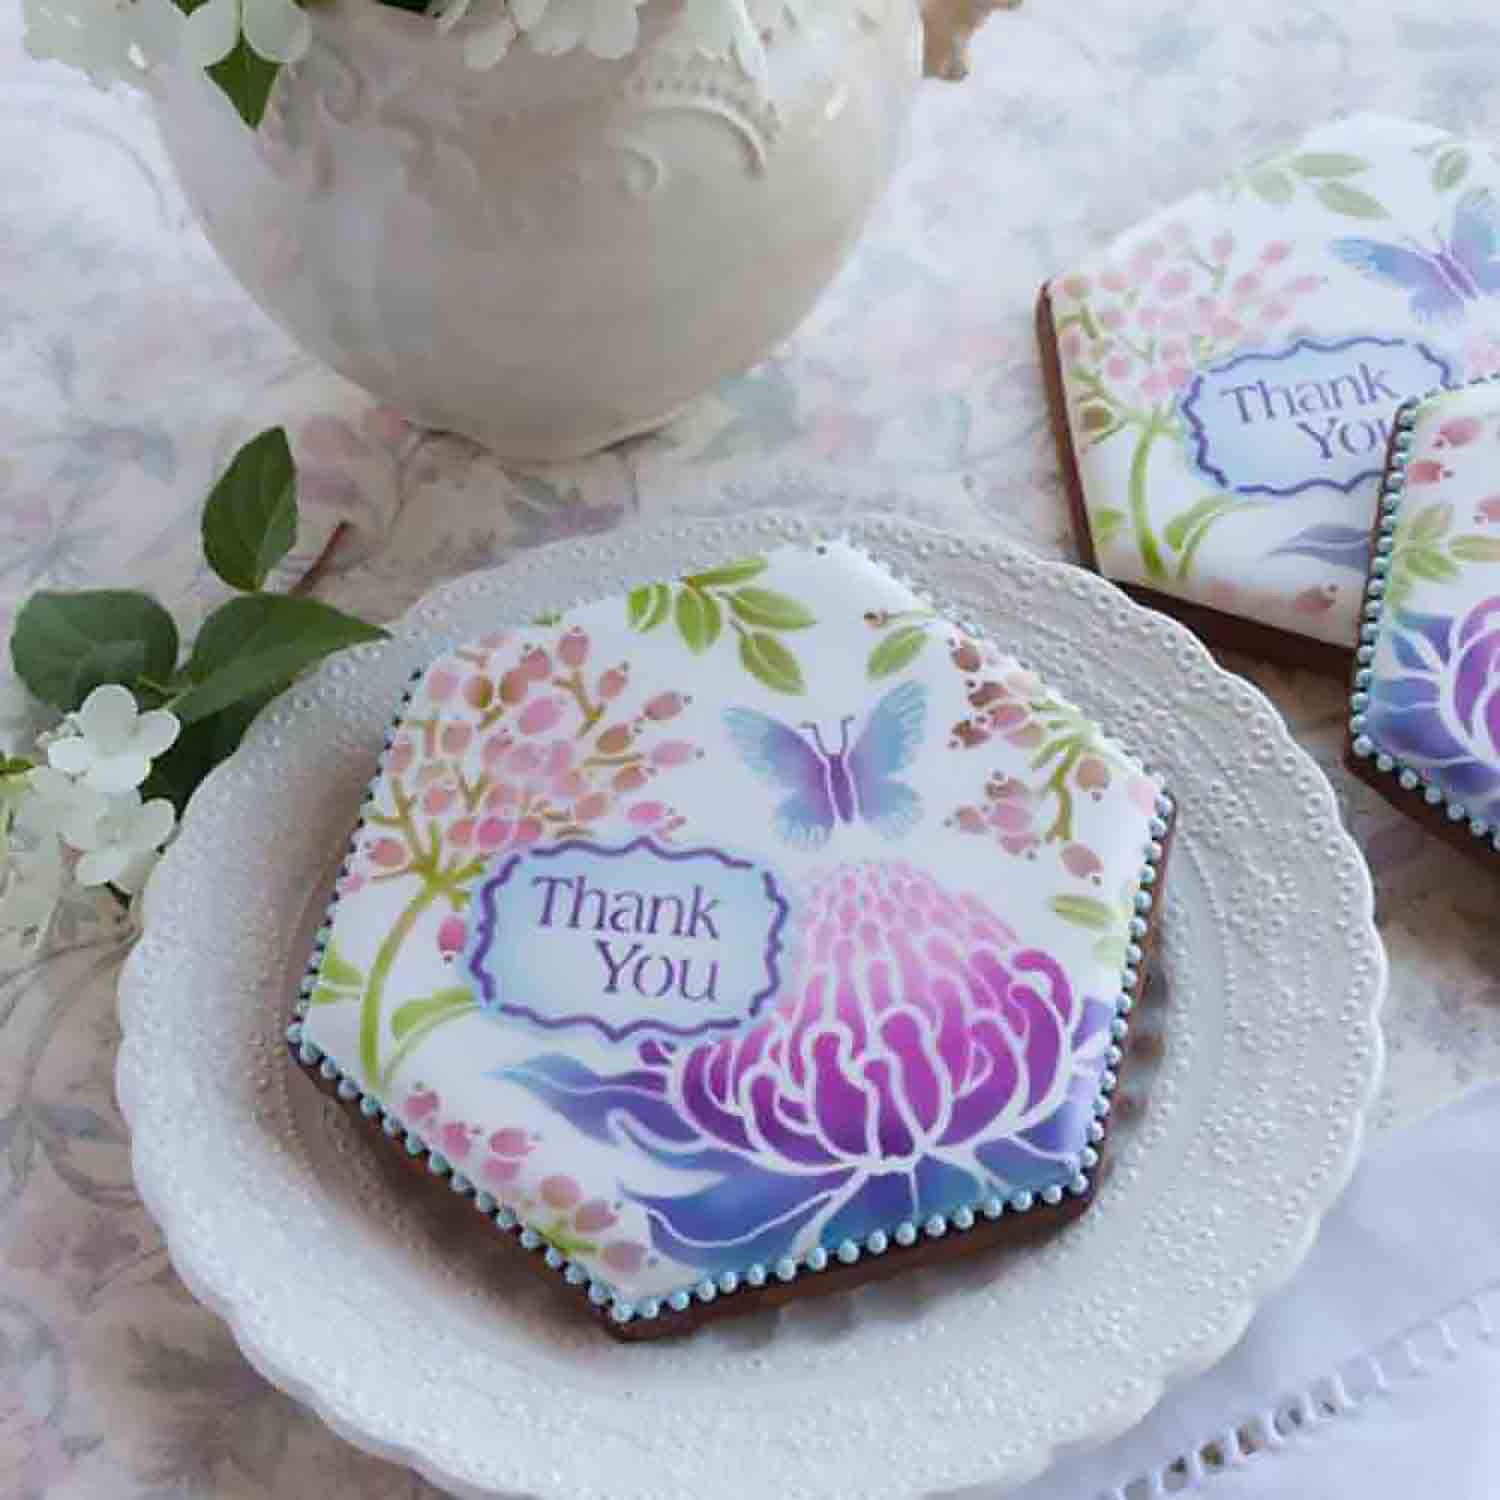 Thank You Cookie Stencil Set by Julia M Usher